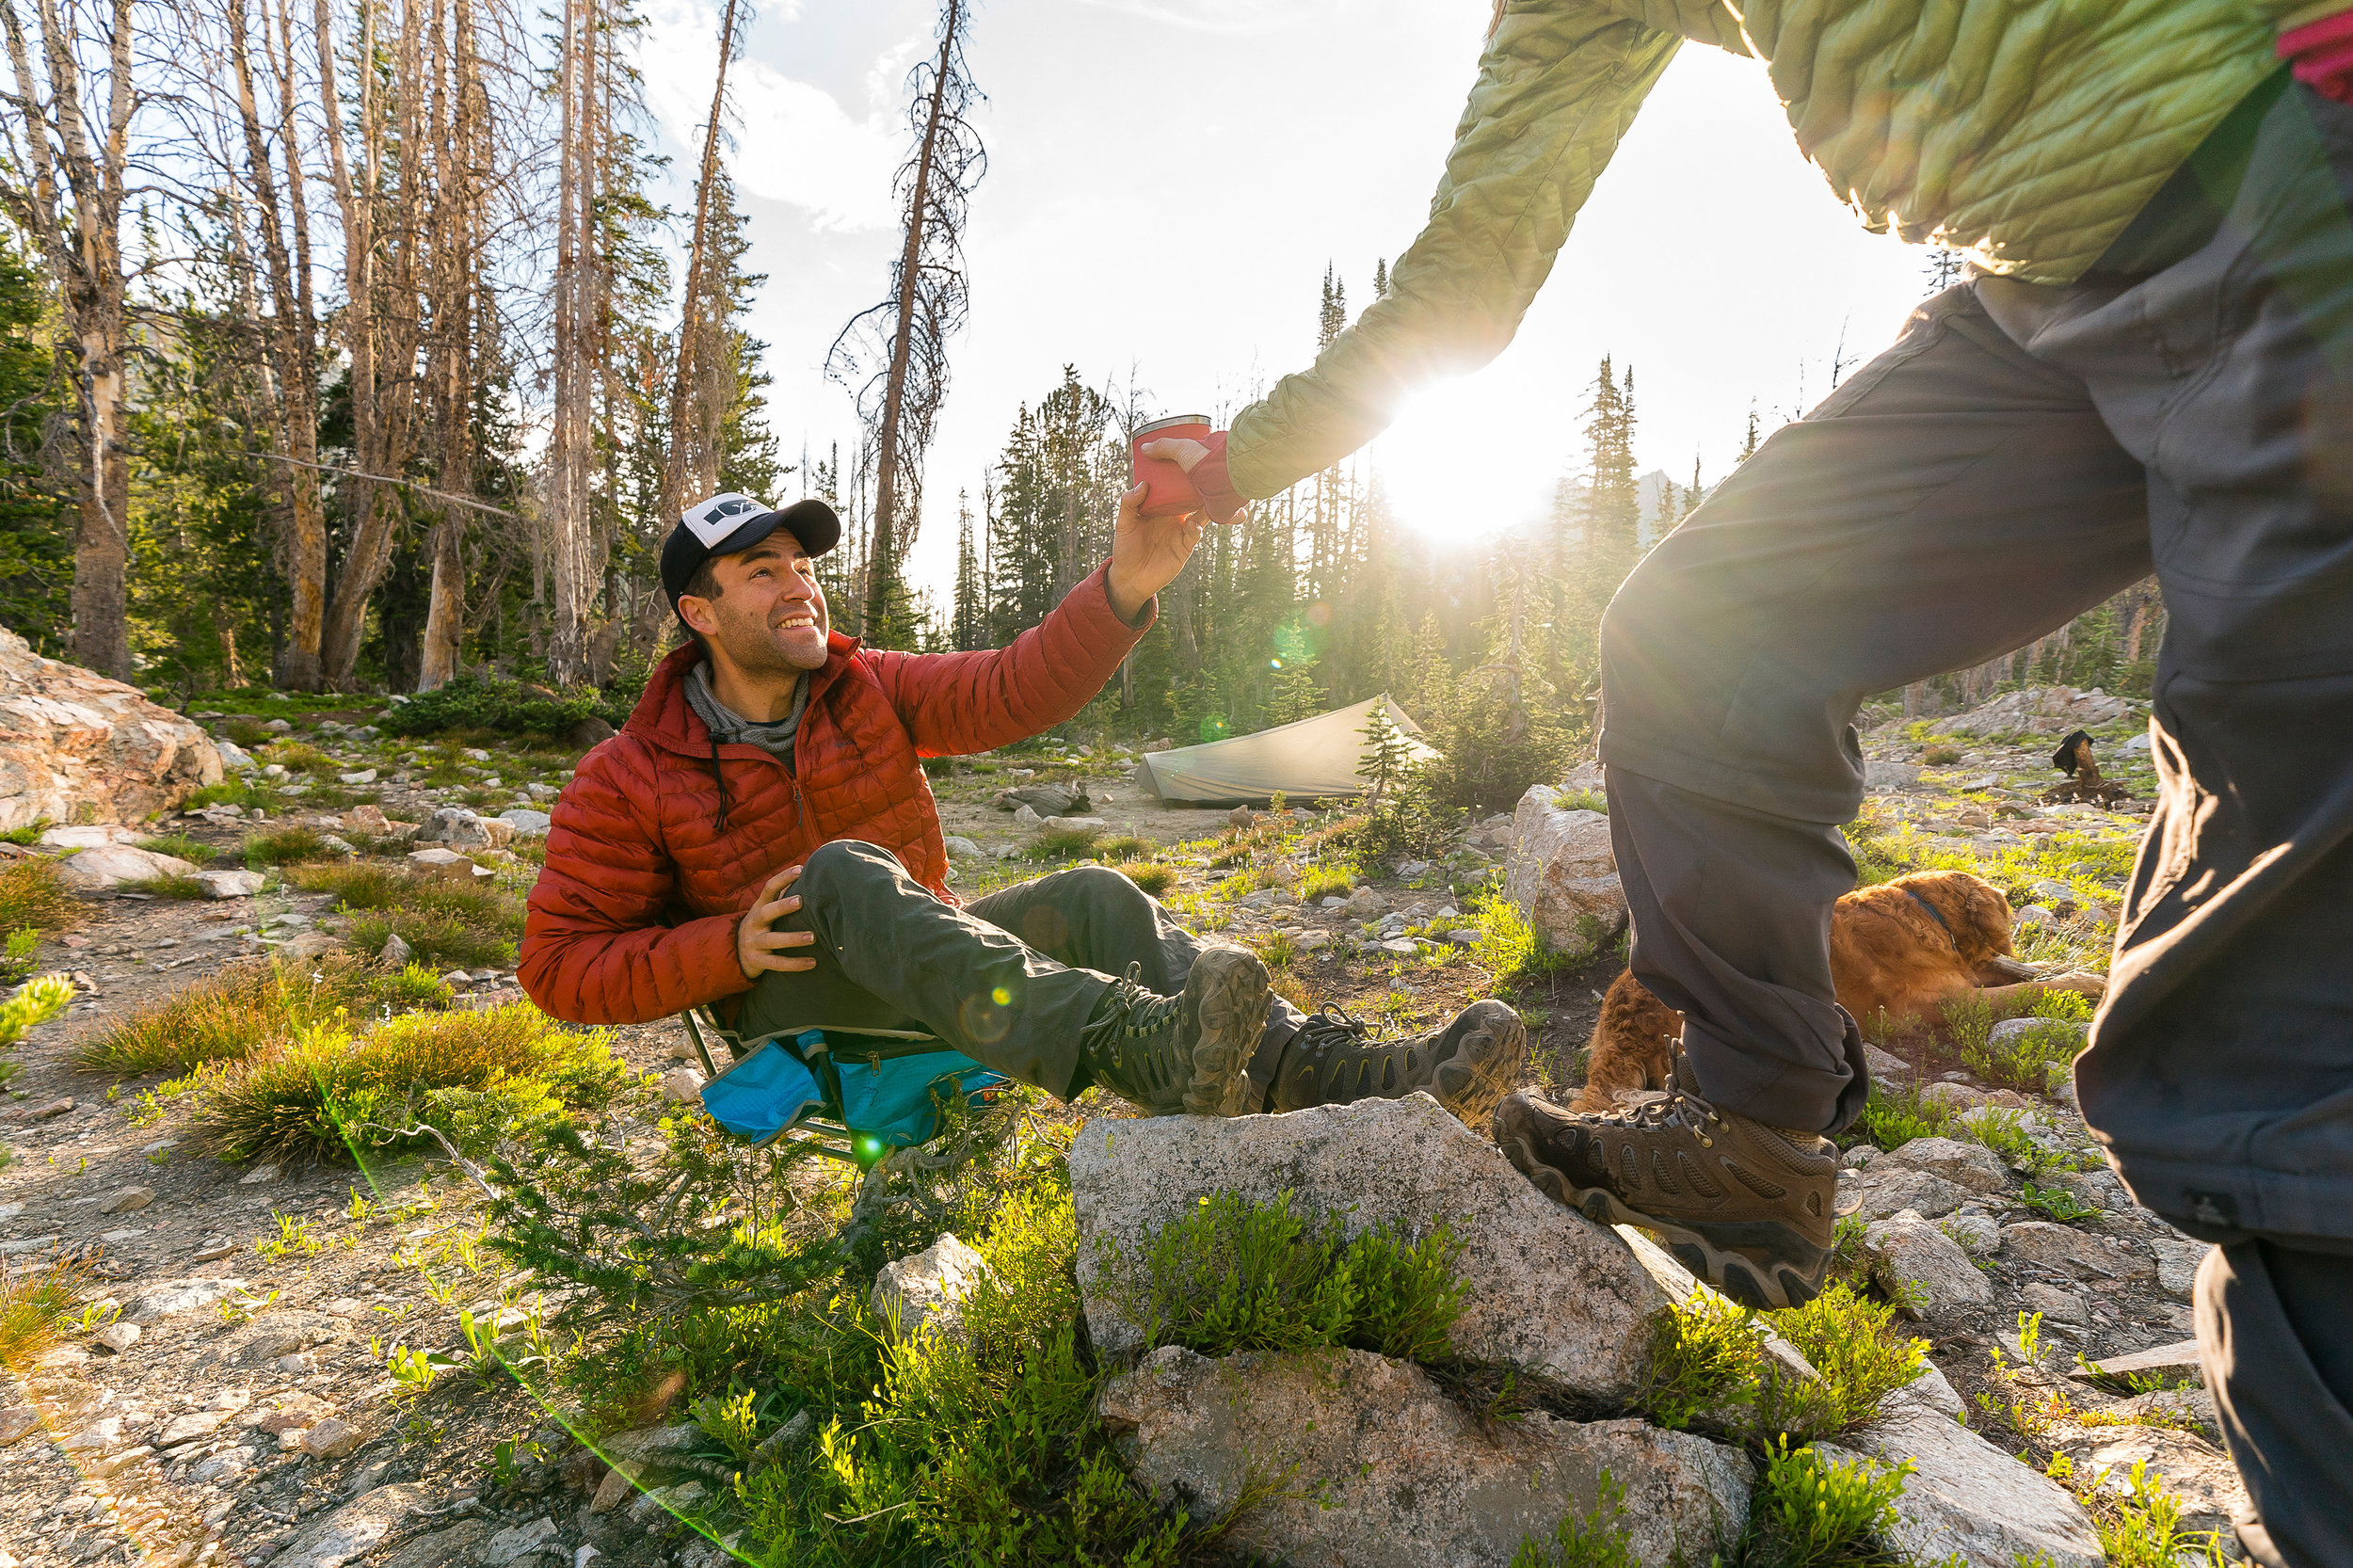 outdoor_lifestyle_Idaho_Ketchum_hiking_Stephen_Matera_7-21-18_DSC5469.jpg